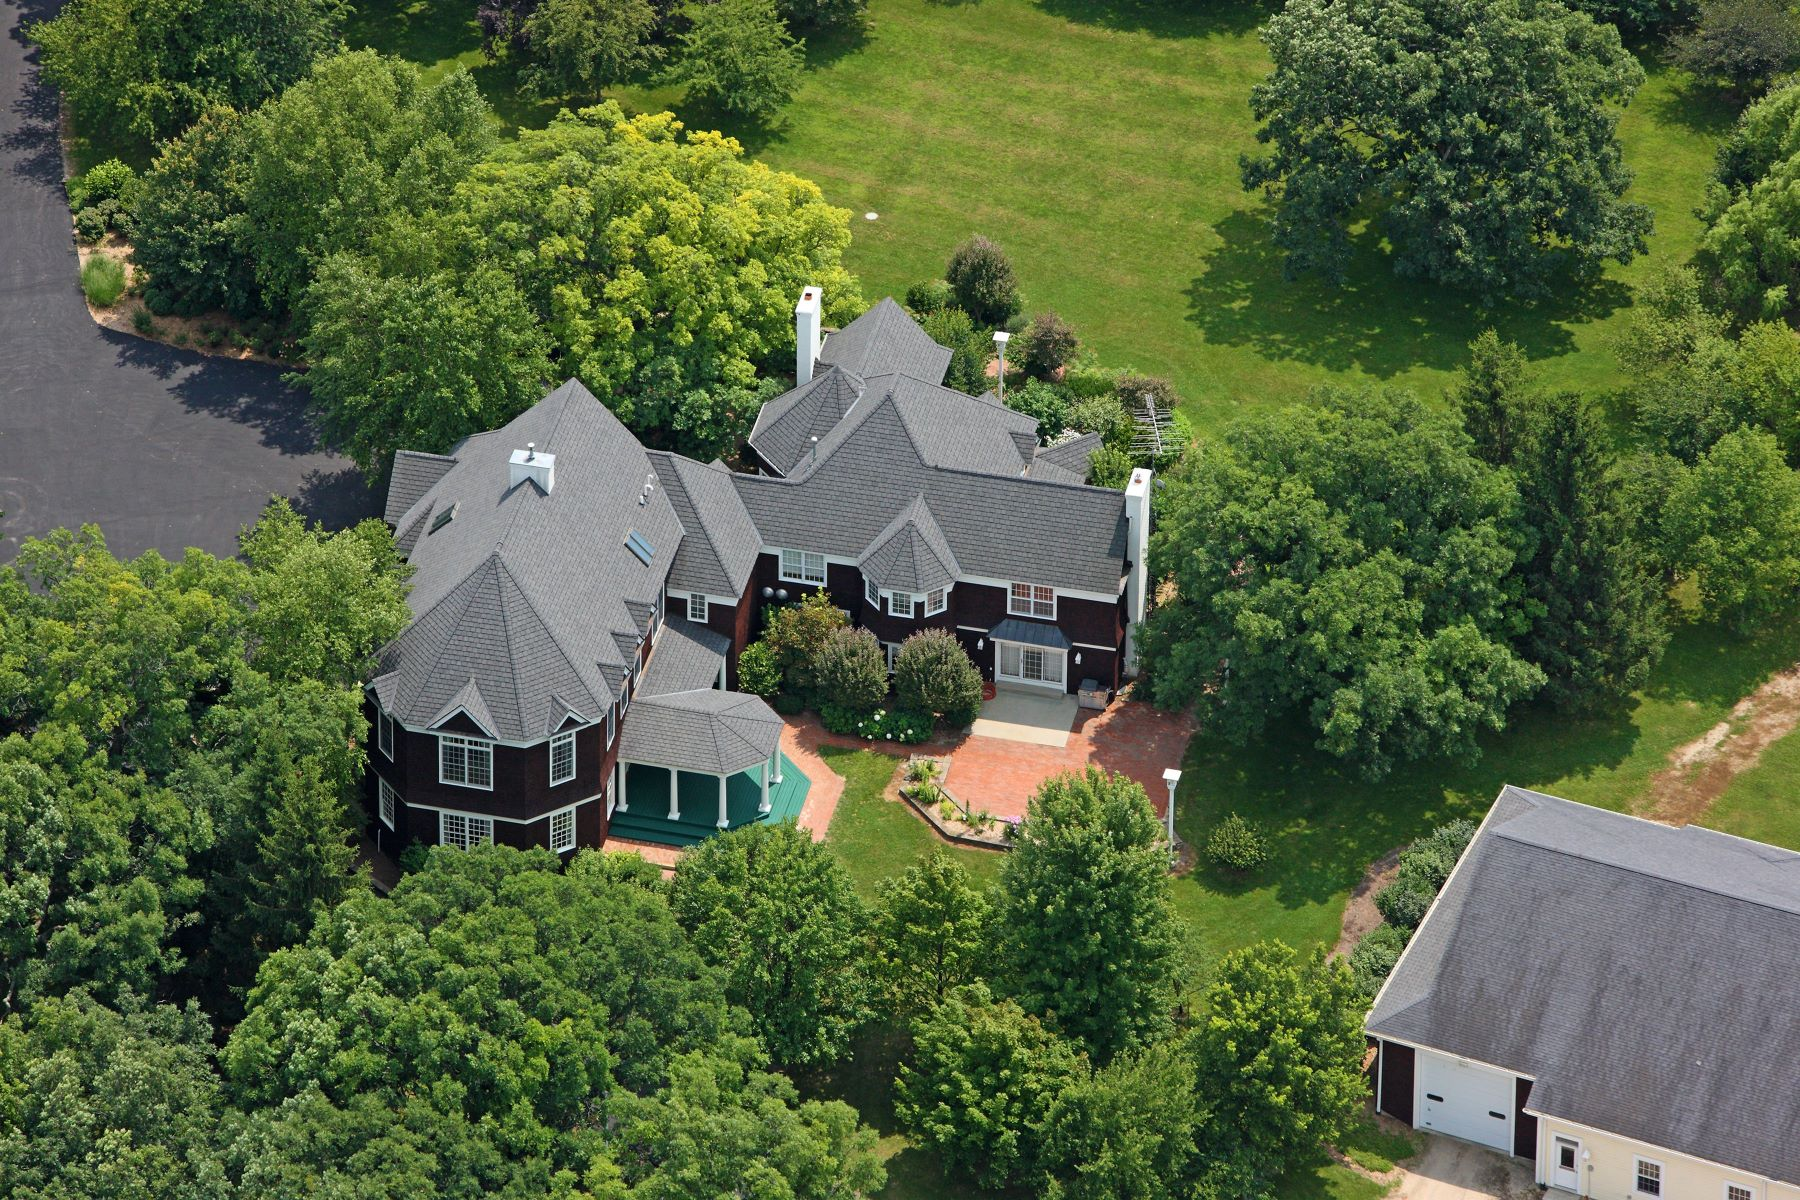 Single Family Homes for Active at Stunning Cape Cod Estate 16556a County Line Road Capron, Illinois 61012 United States